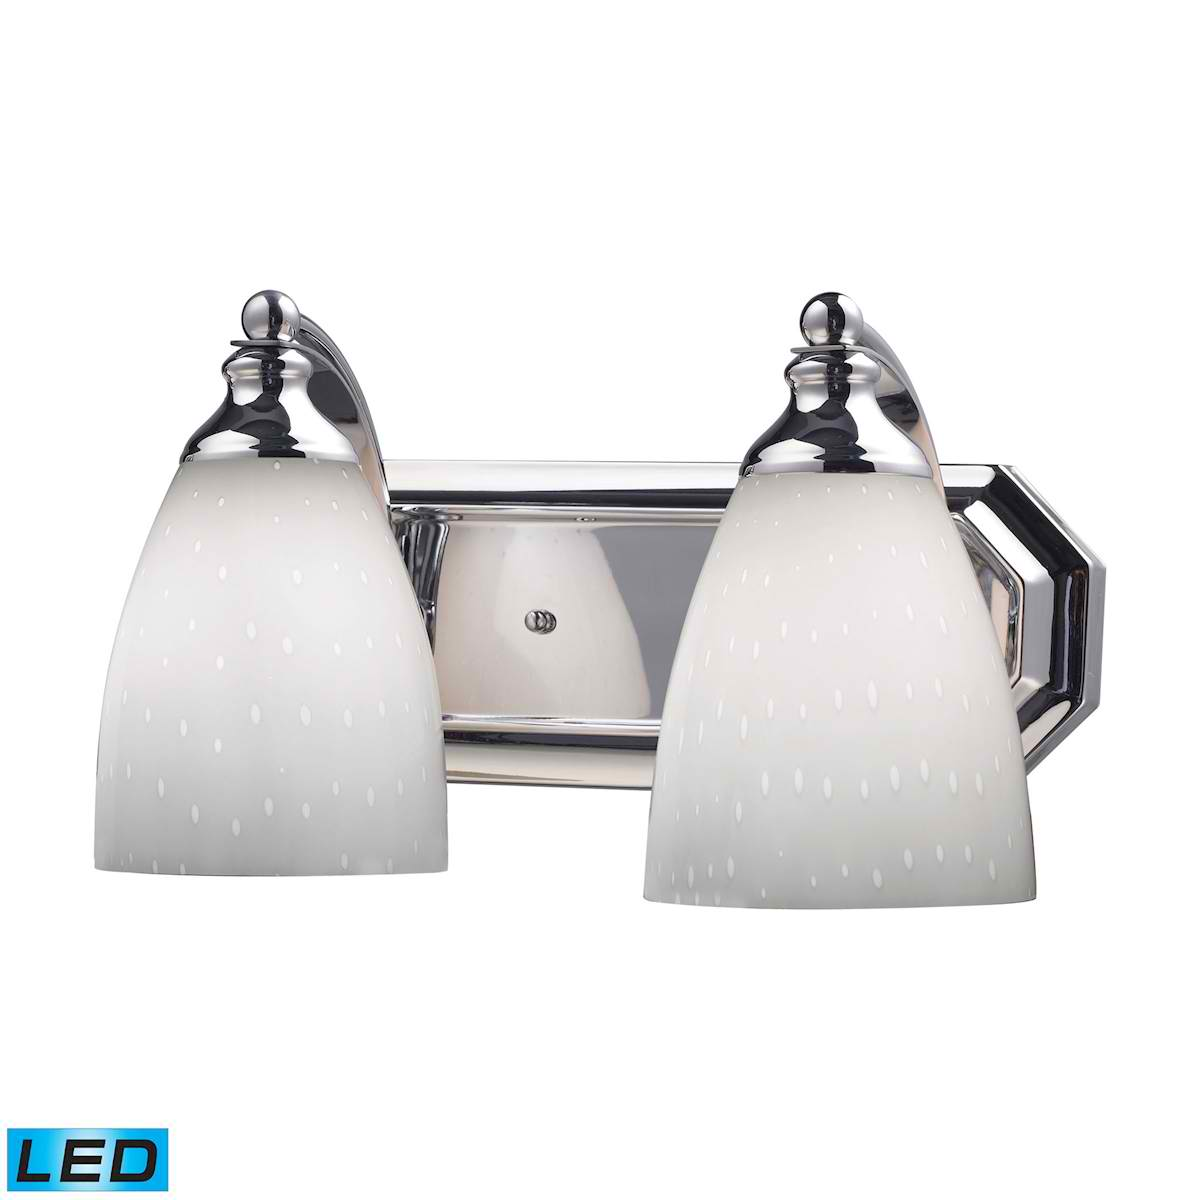 2 Light Vanity in Polished Chrome and Simply White Glass - LED, 800 Lumens (1600 Lumens Total) With Full Scale